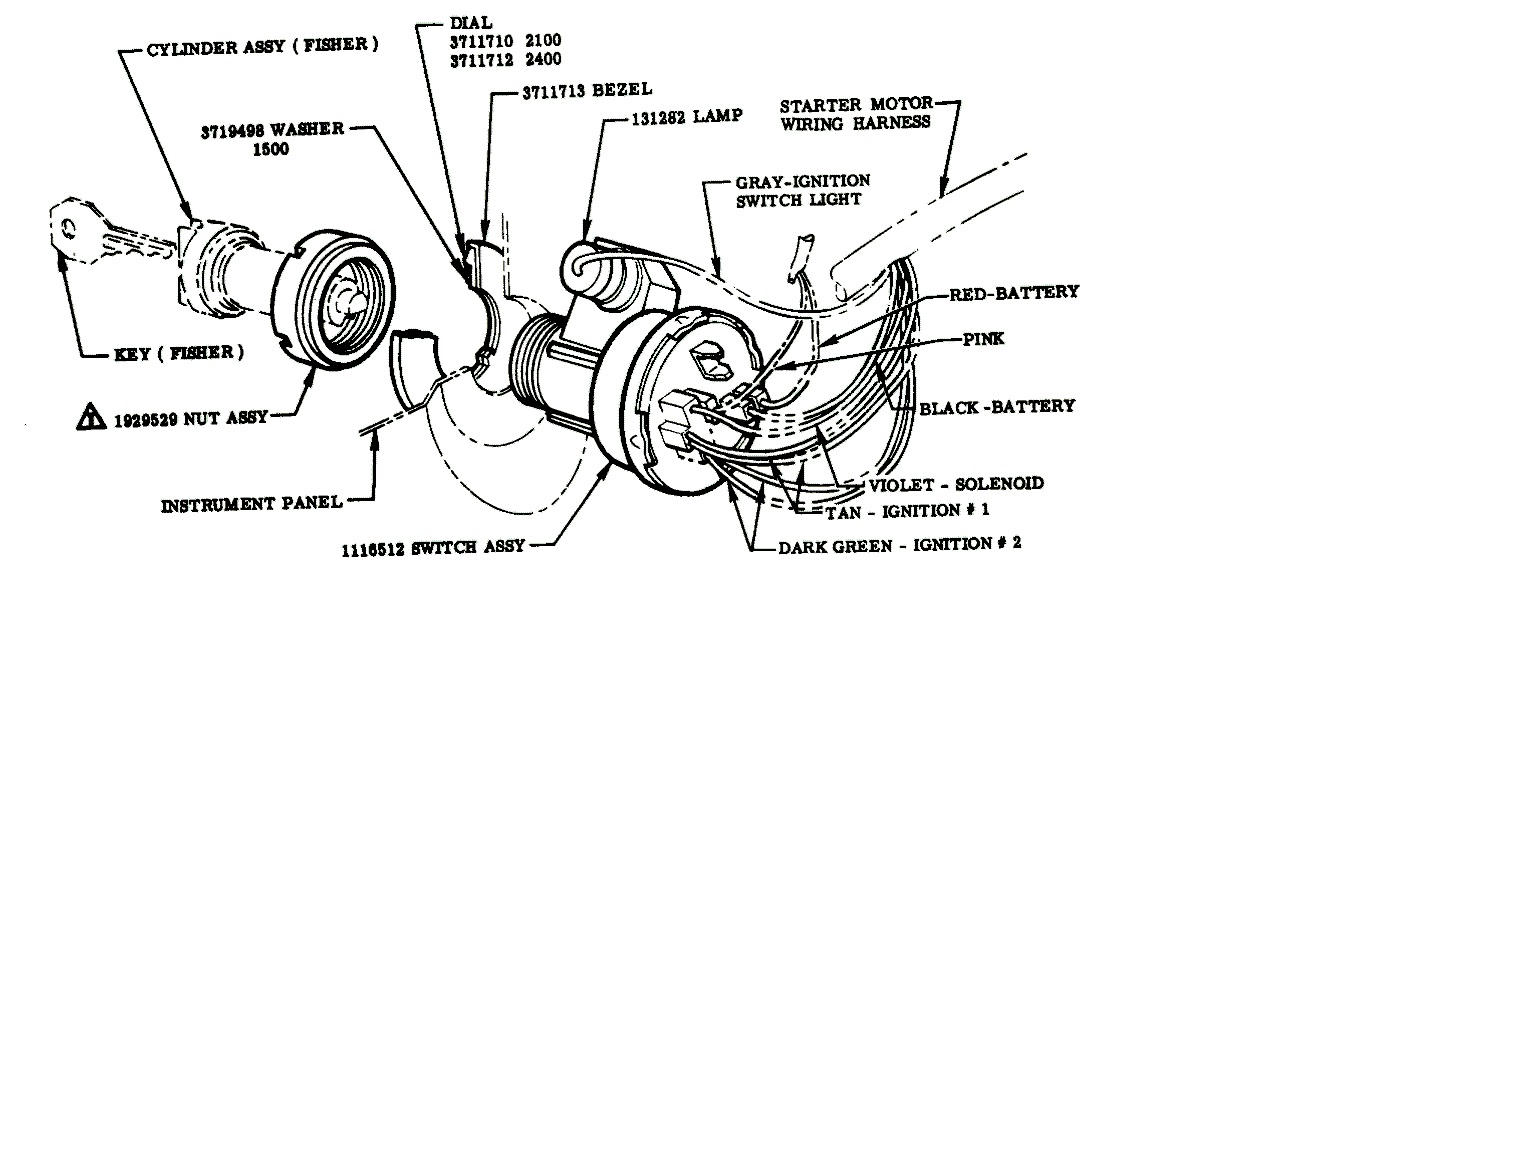 1953 ford ignition switch wiring enthusiast wiring diagrams u2022 rh rasalibre co